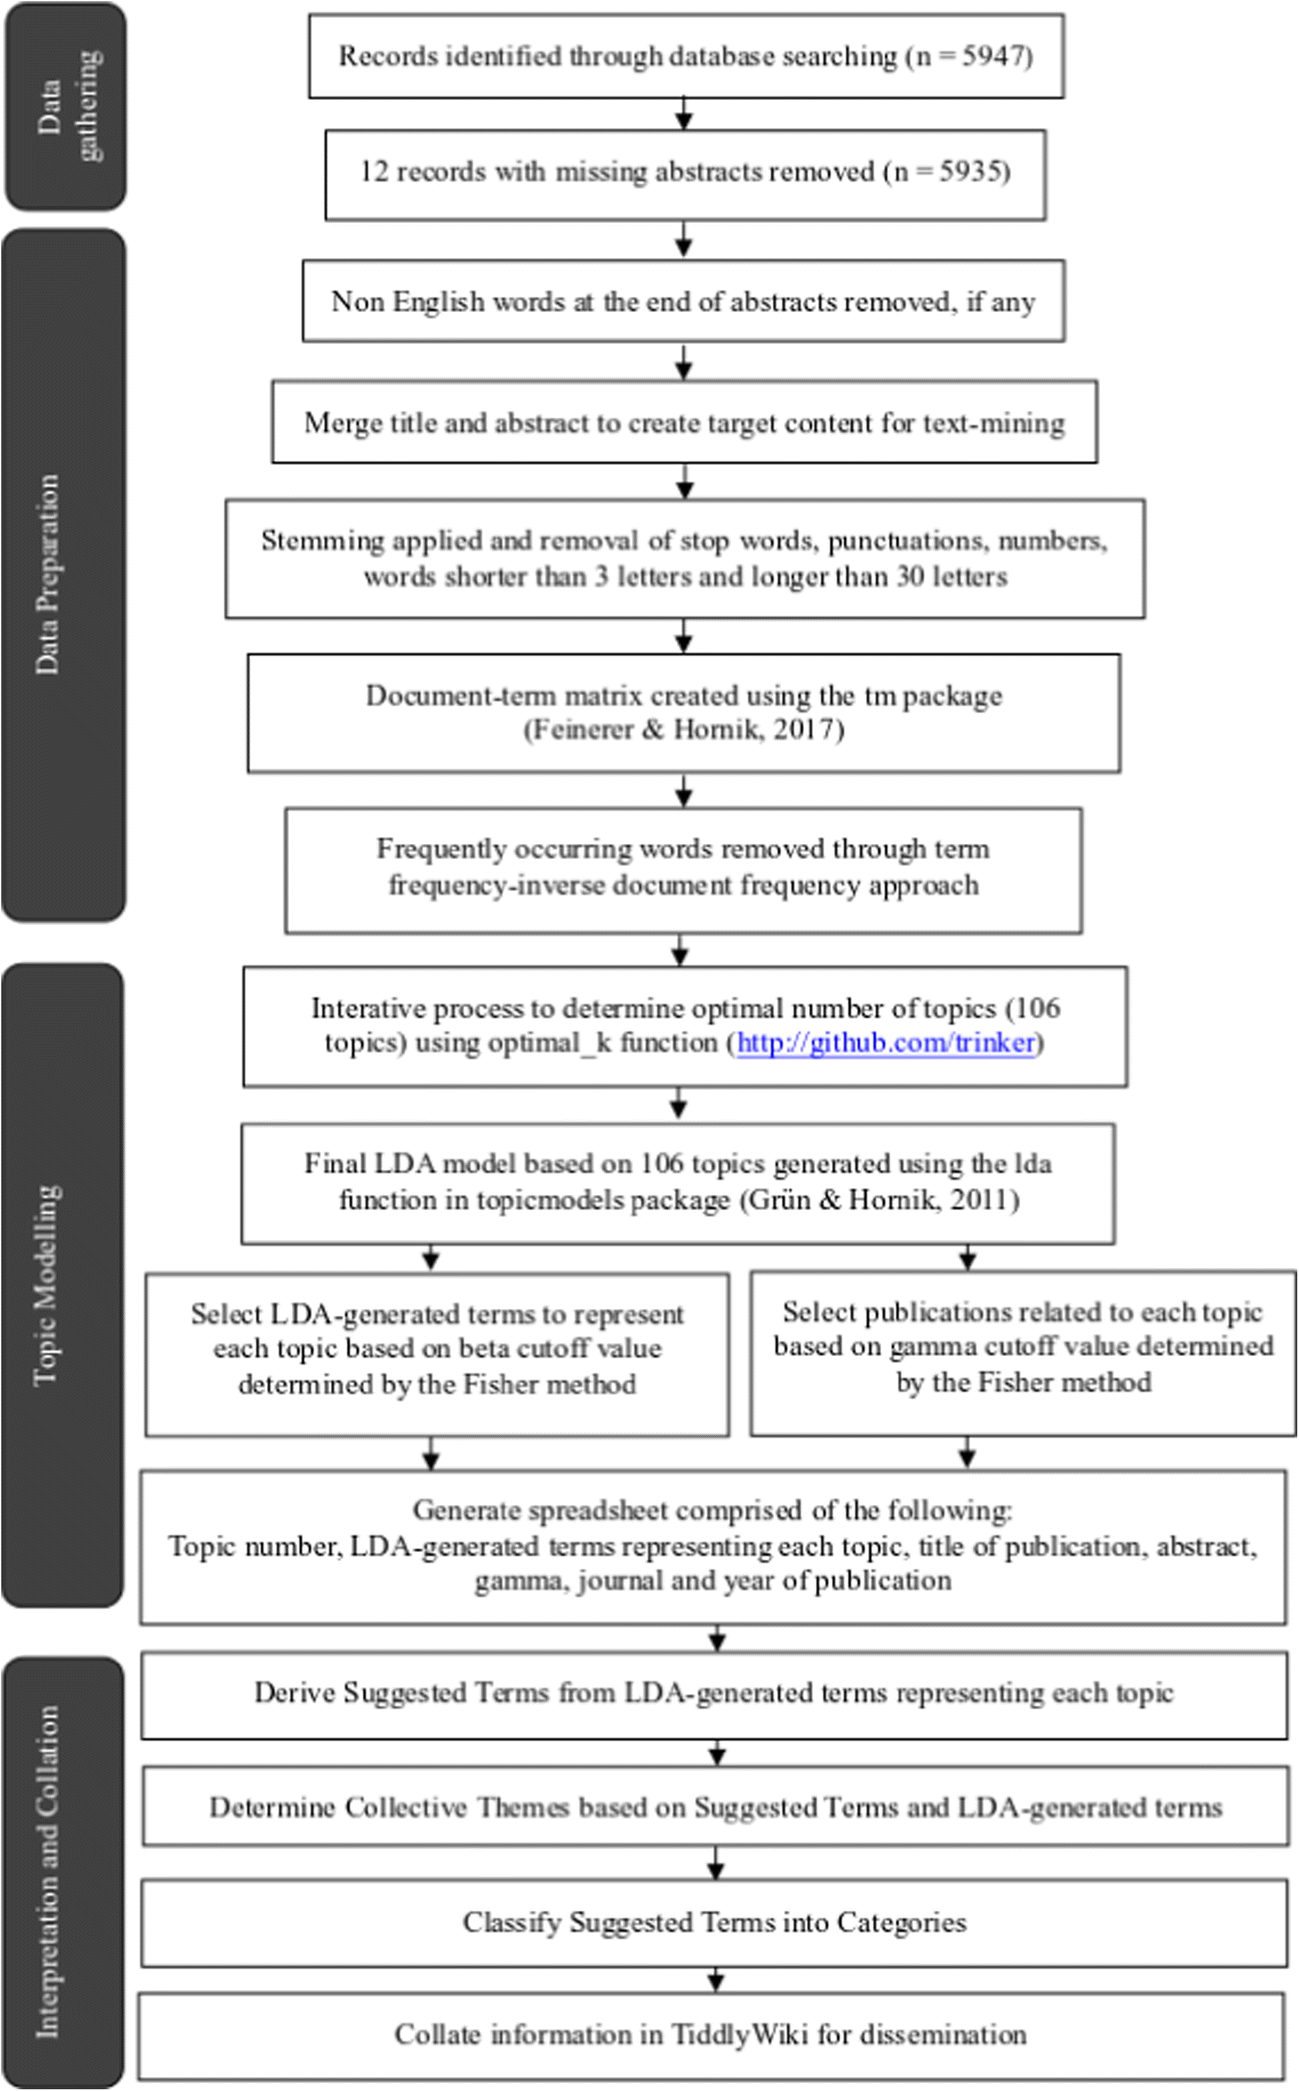 Scoping Review of Mindfulness Research: a Topic Modelling